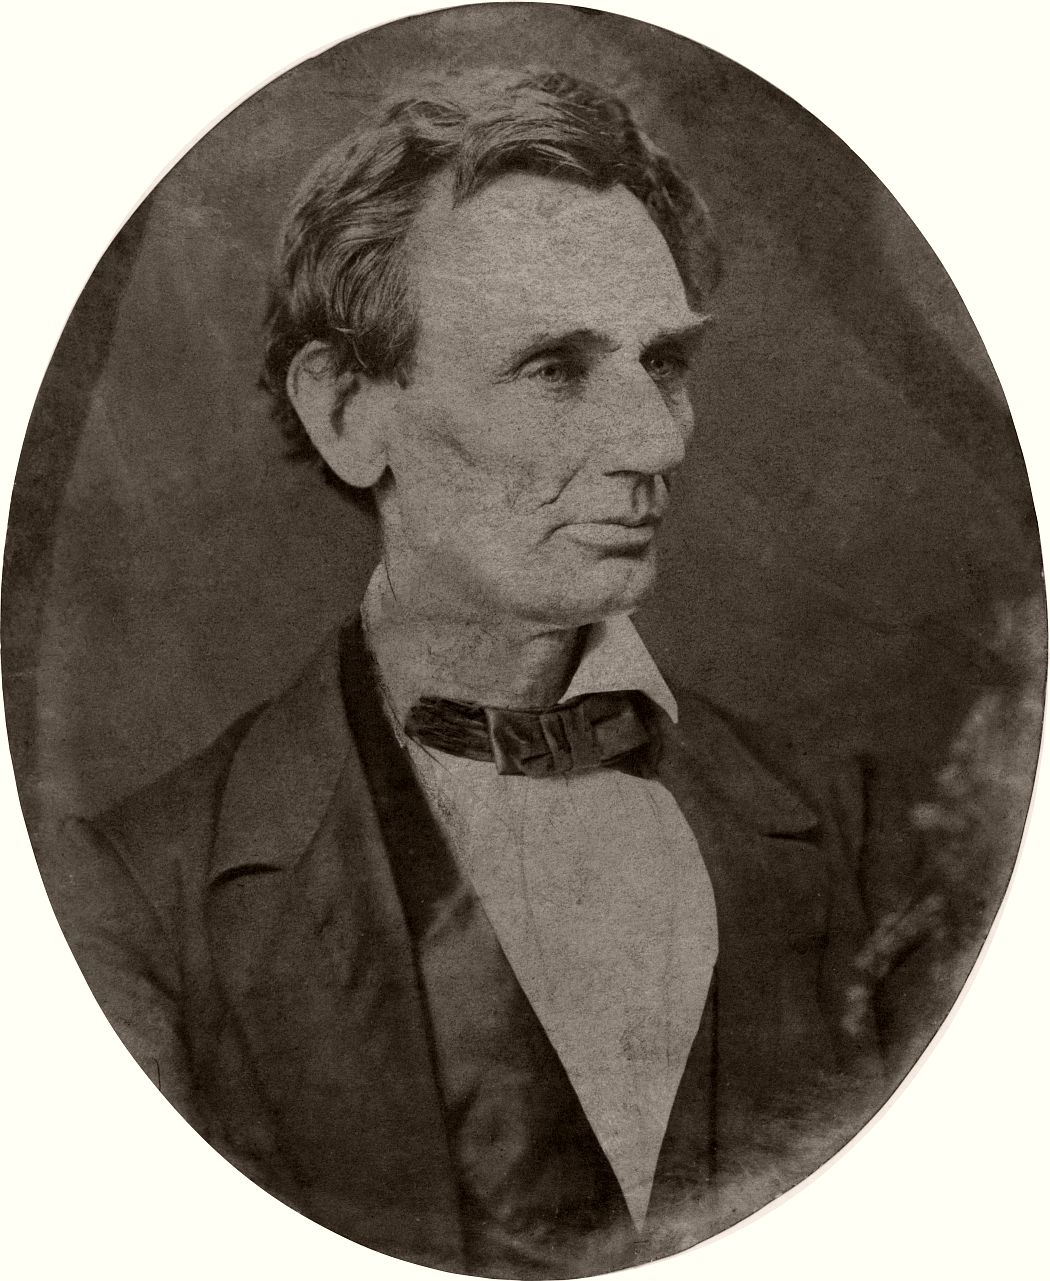 Abraham Lincoln, candidate for U.S. president. Head-and-shoulders portrait, facing right, June 3, 1860